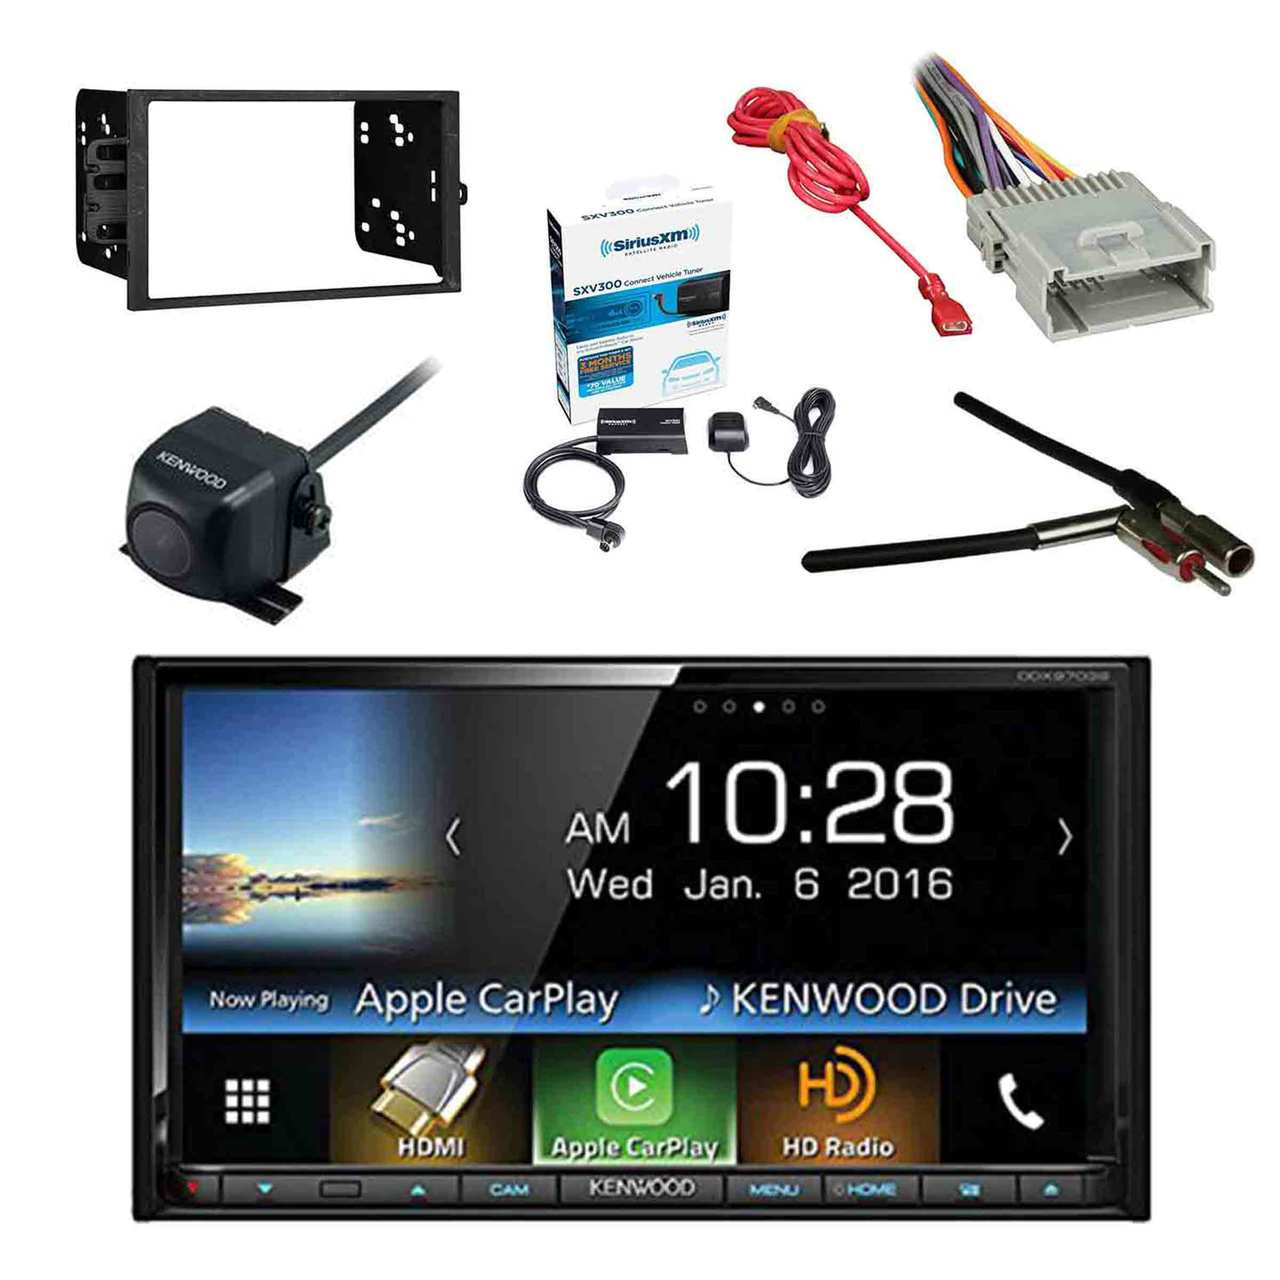 small resolution of kenwood ddx9703s 2 din dvd cd am fm car stereo receiver w sirius radio tuner kenwood rearview wide angle camera metra 2din dash kit for radio